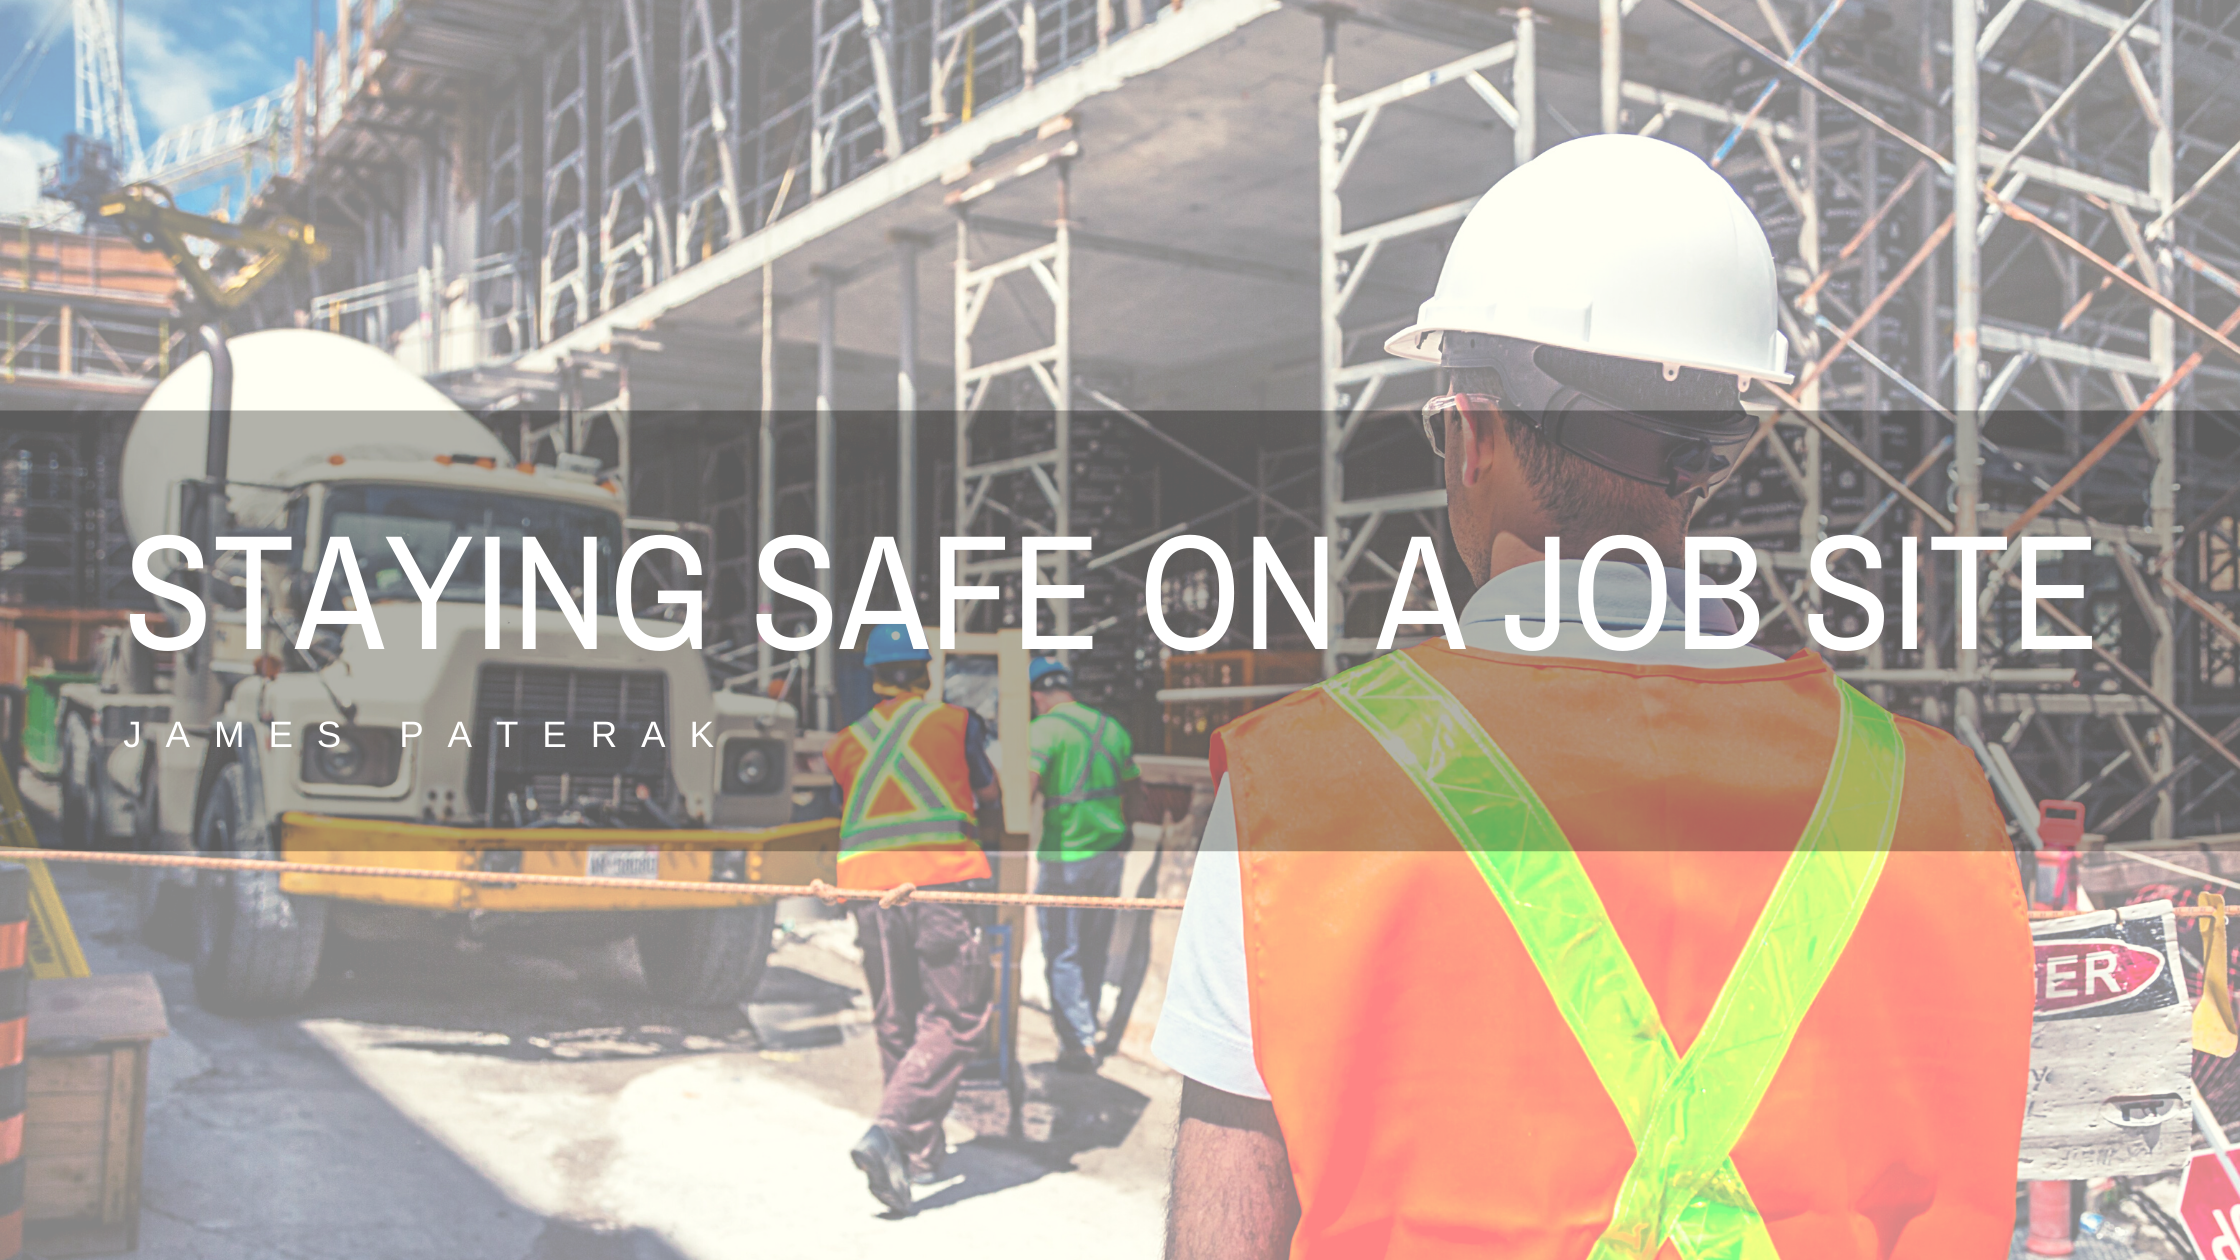 James Paterak: Tips for Staying Safe on a Job Site During COVID-19